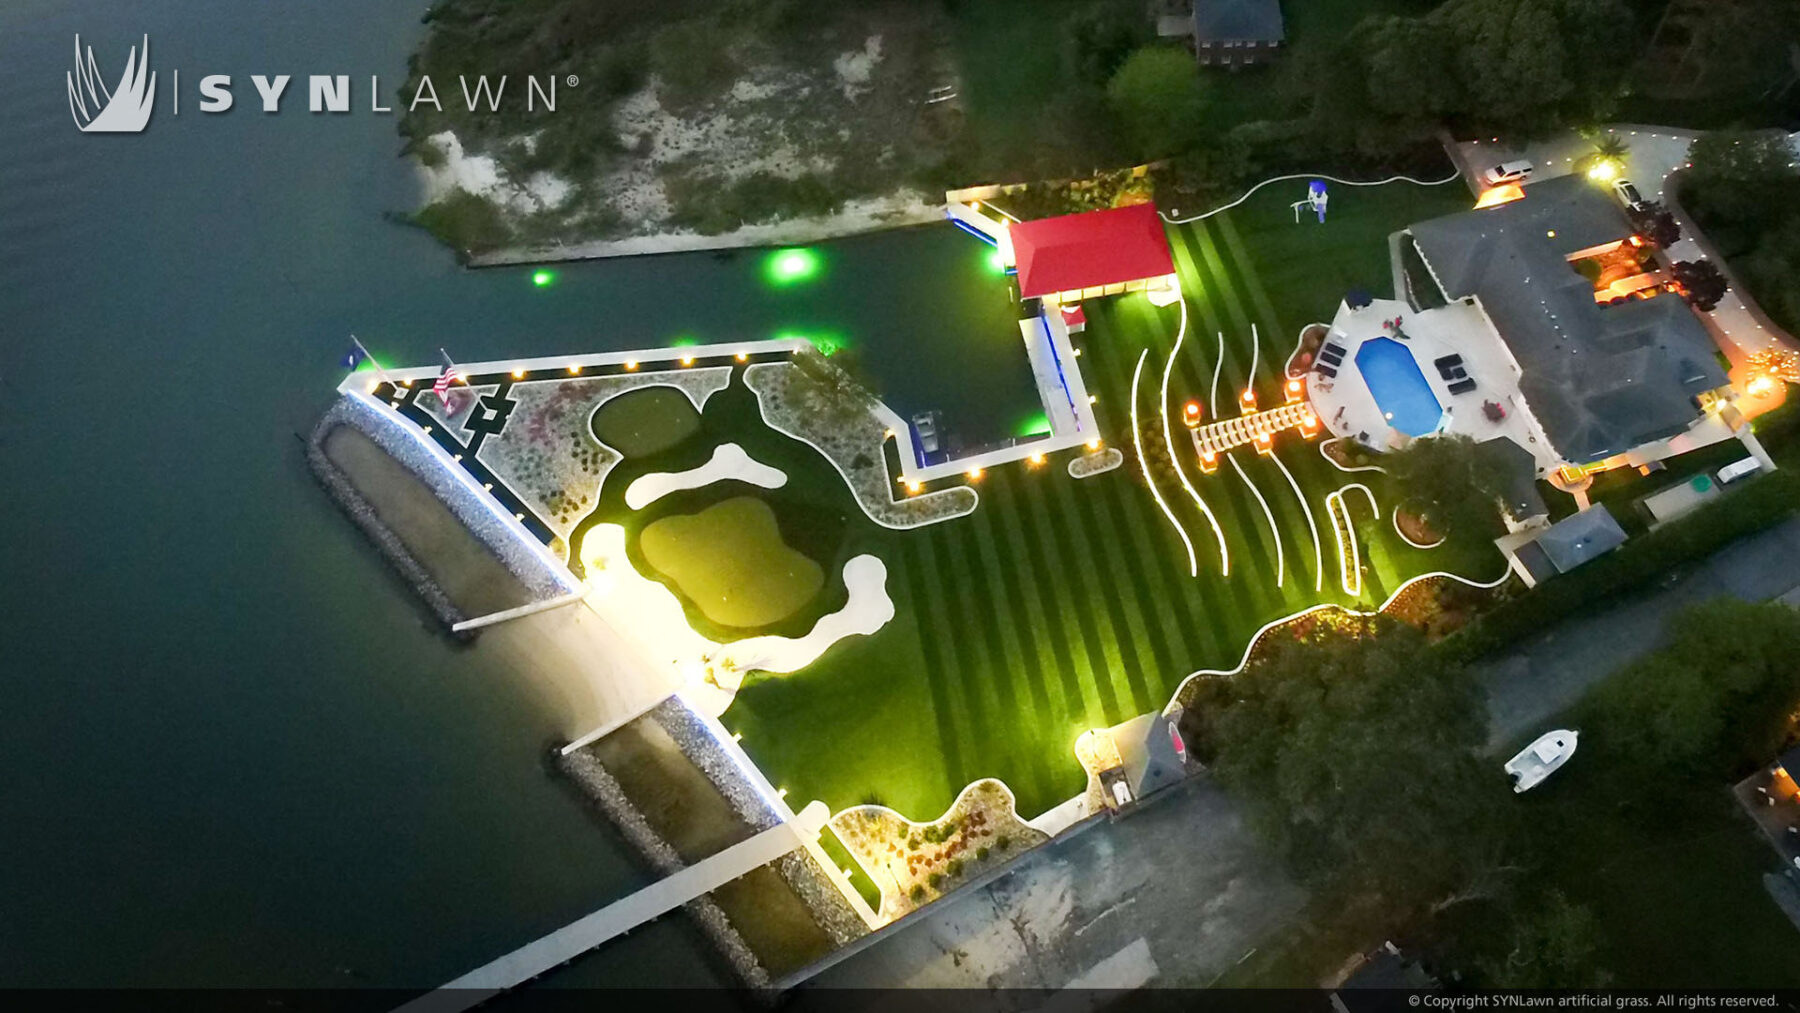 residential putting green and artificial grass installation